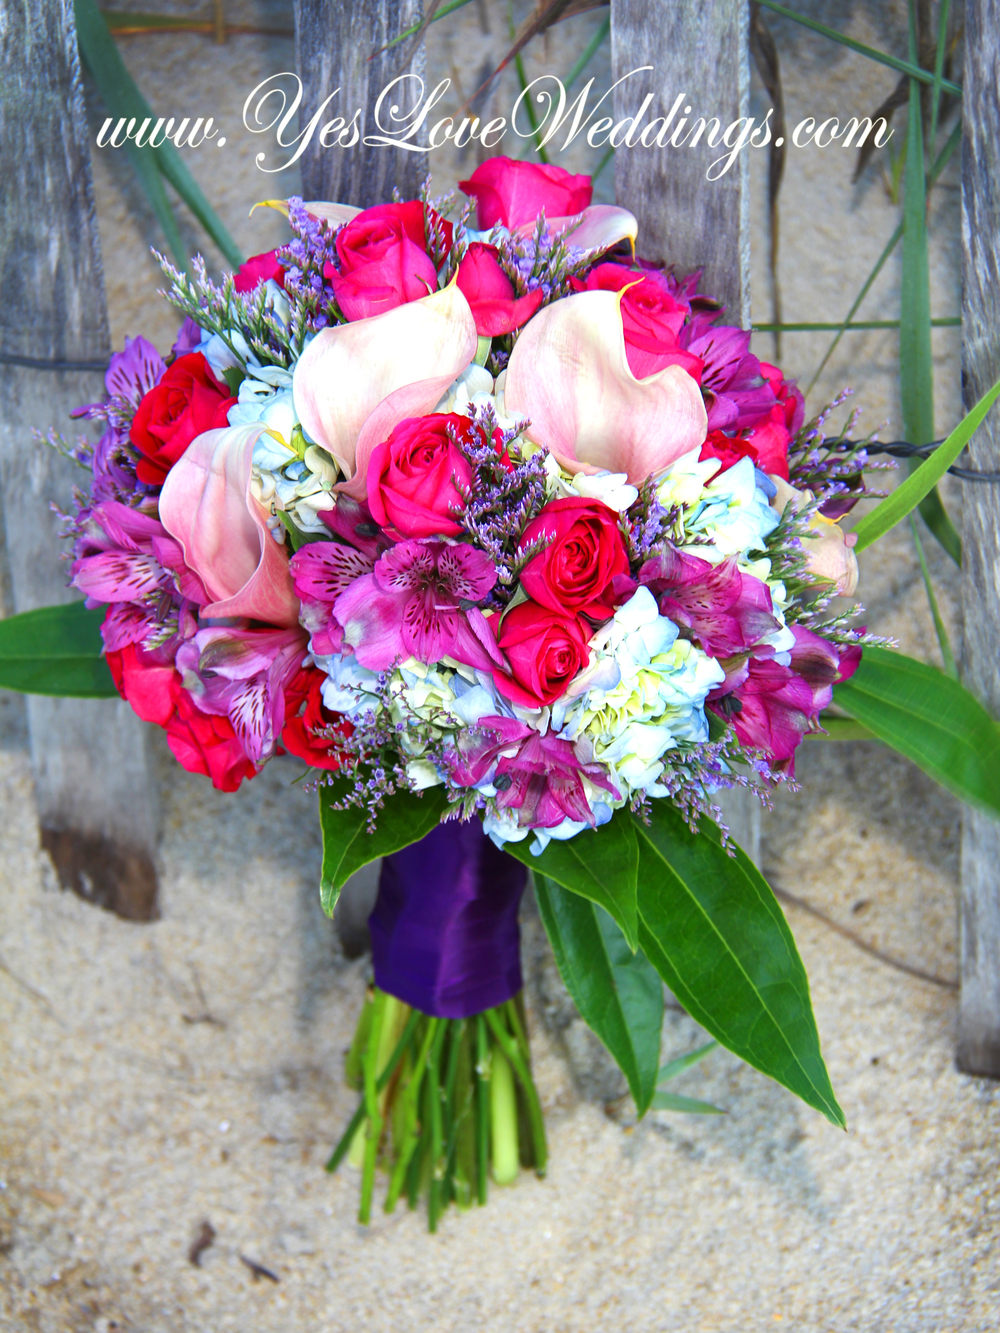 Beach wedding purple bride's bouquet